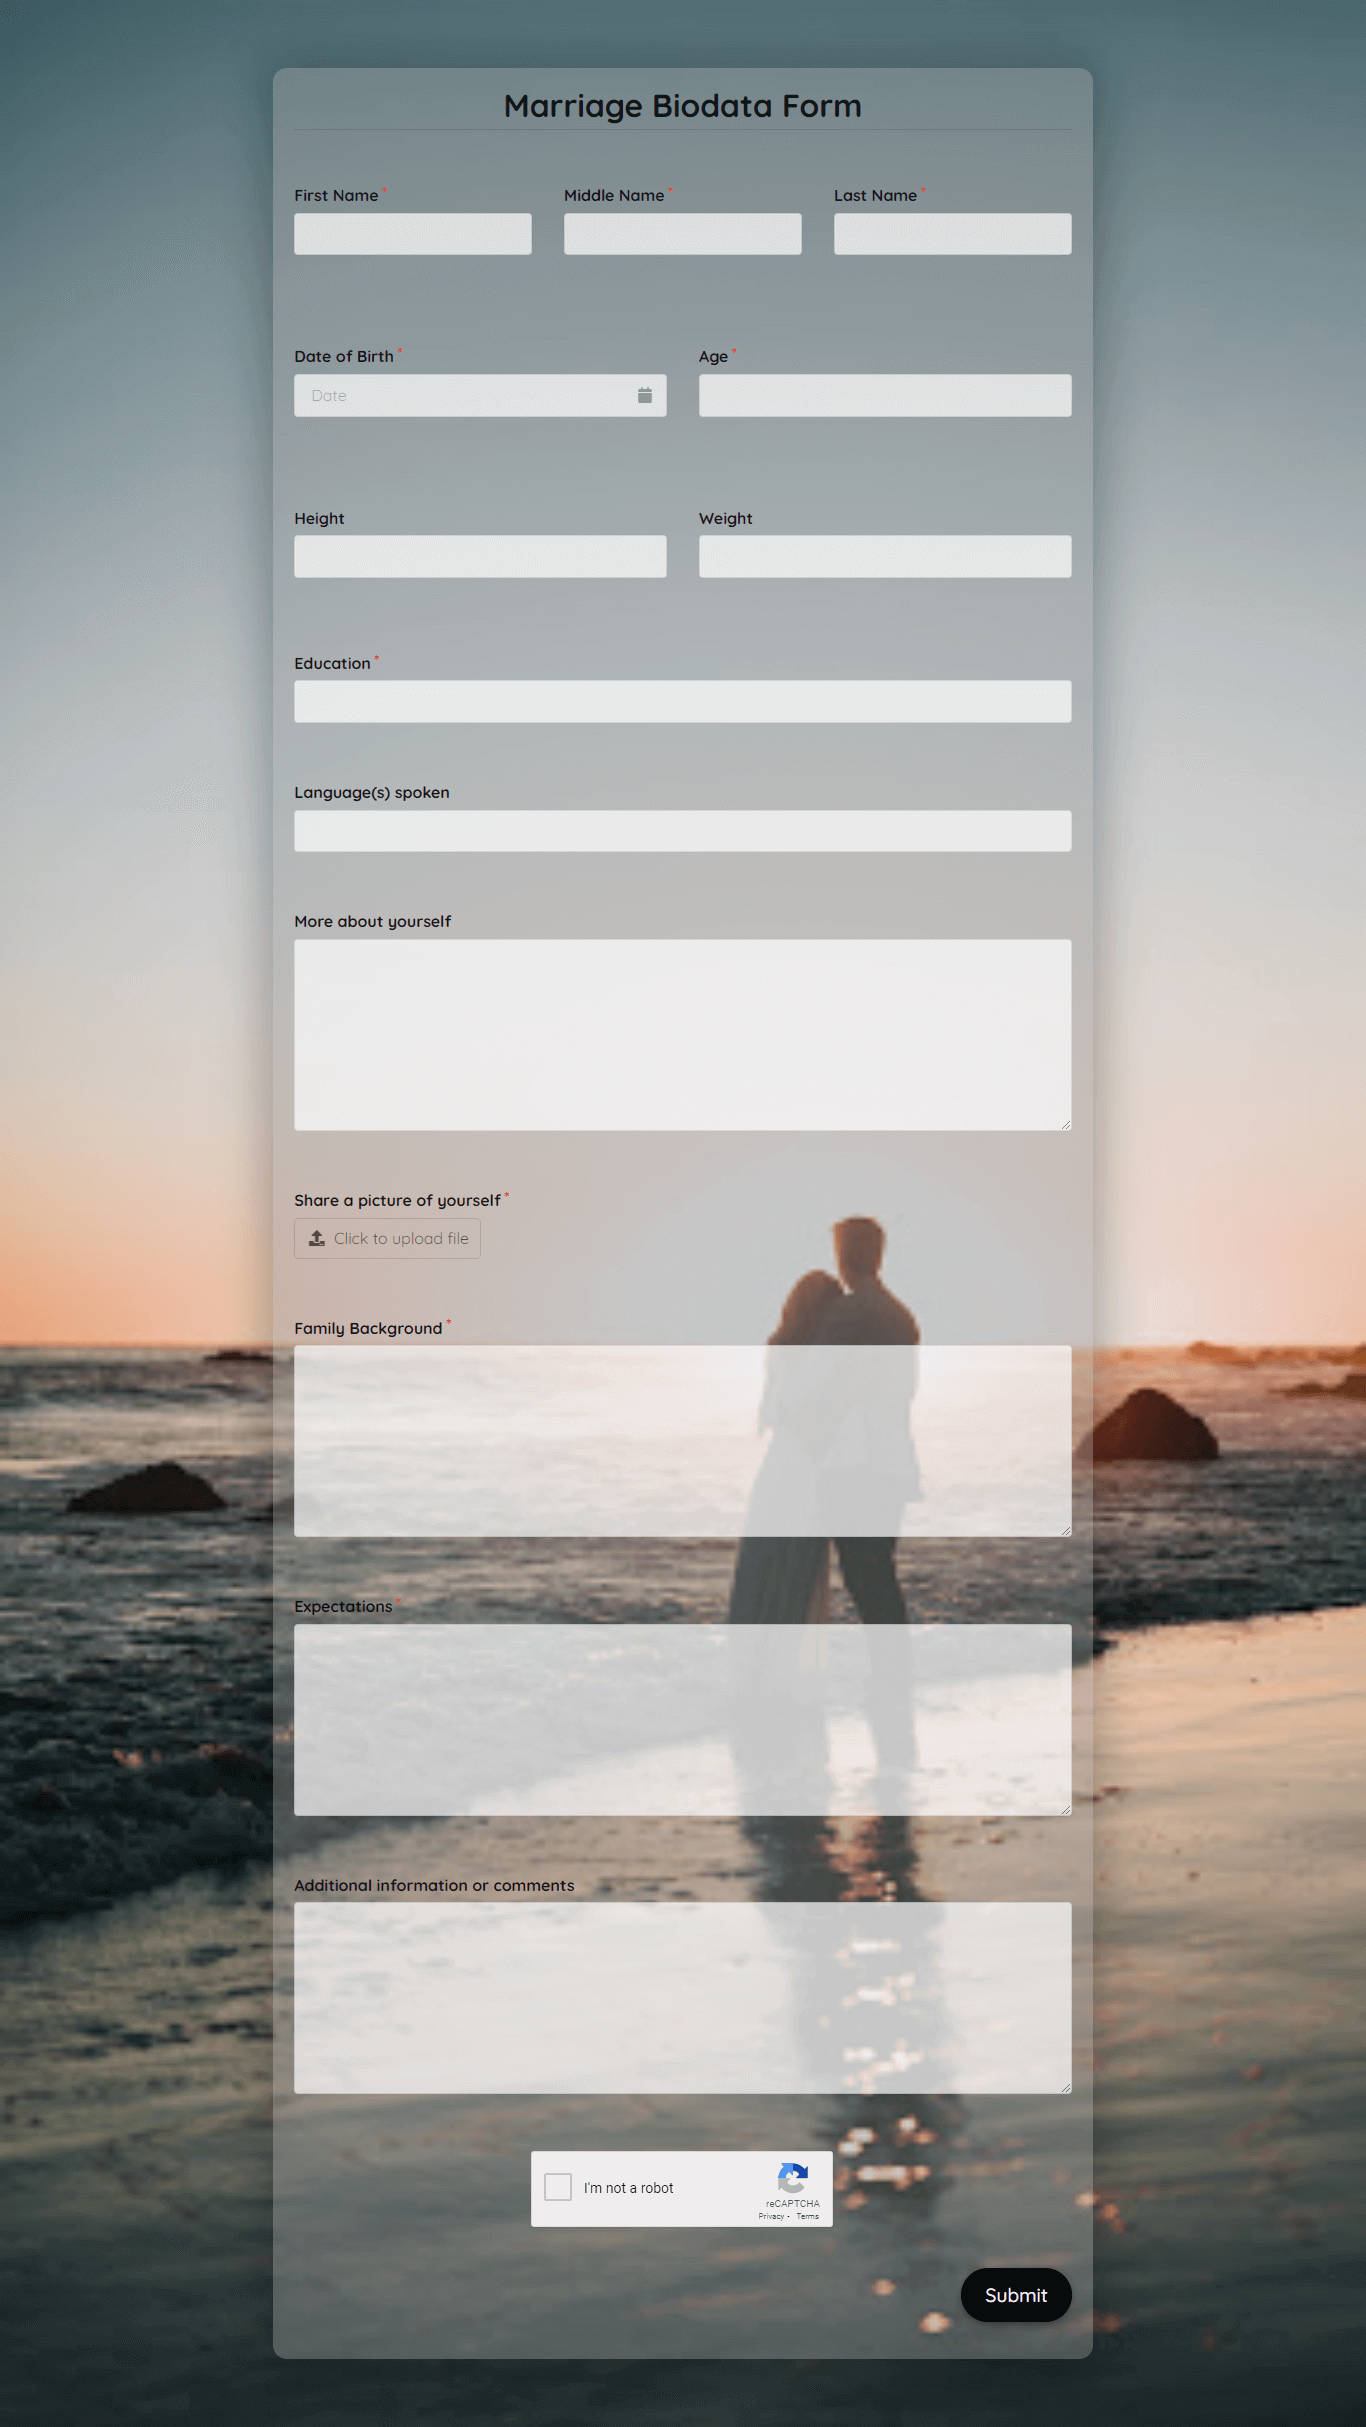 Marriage Biodata Form template